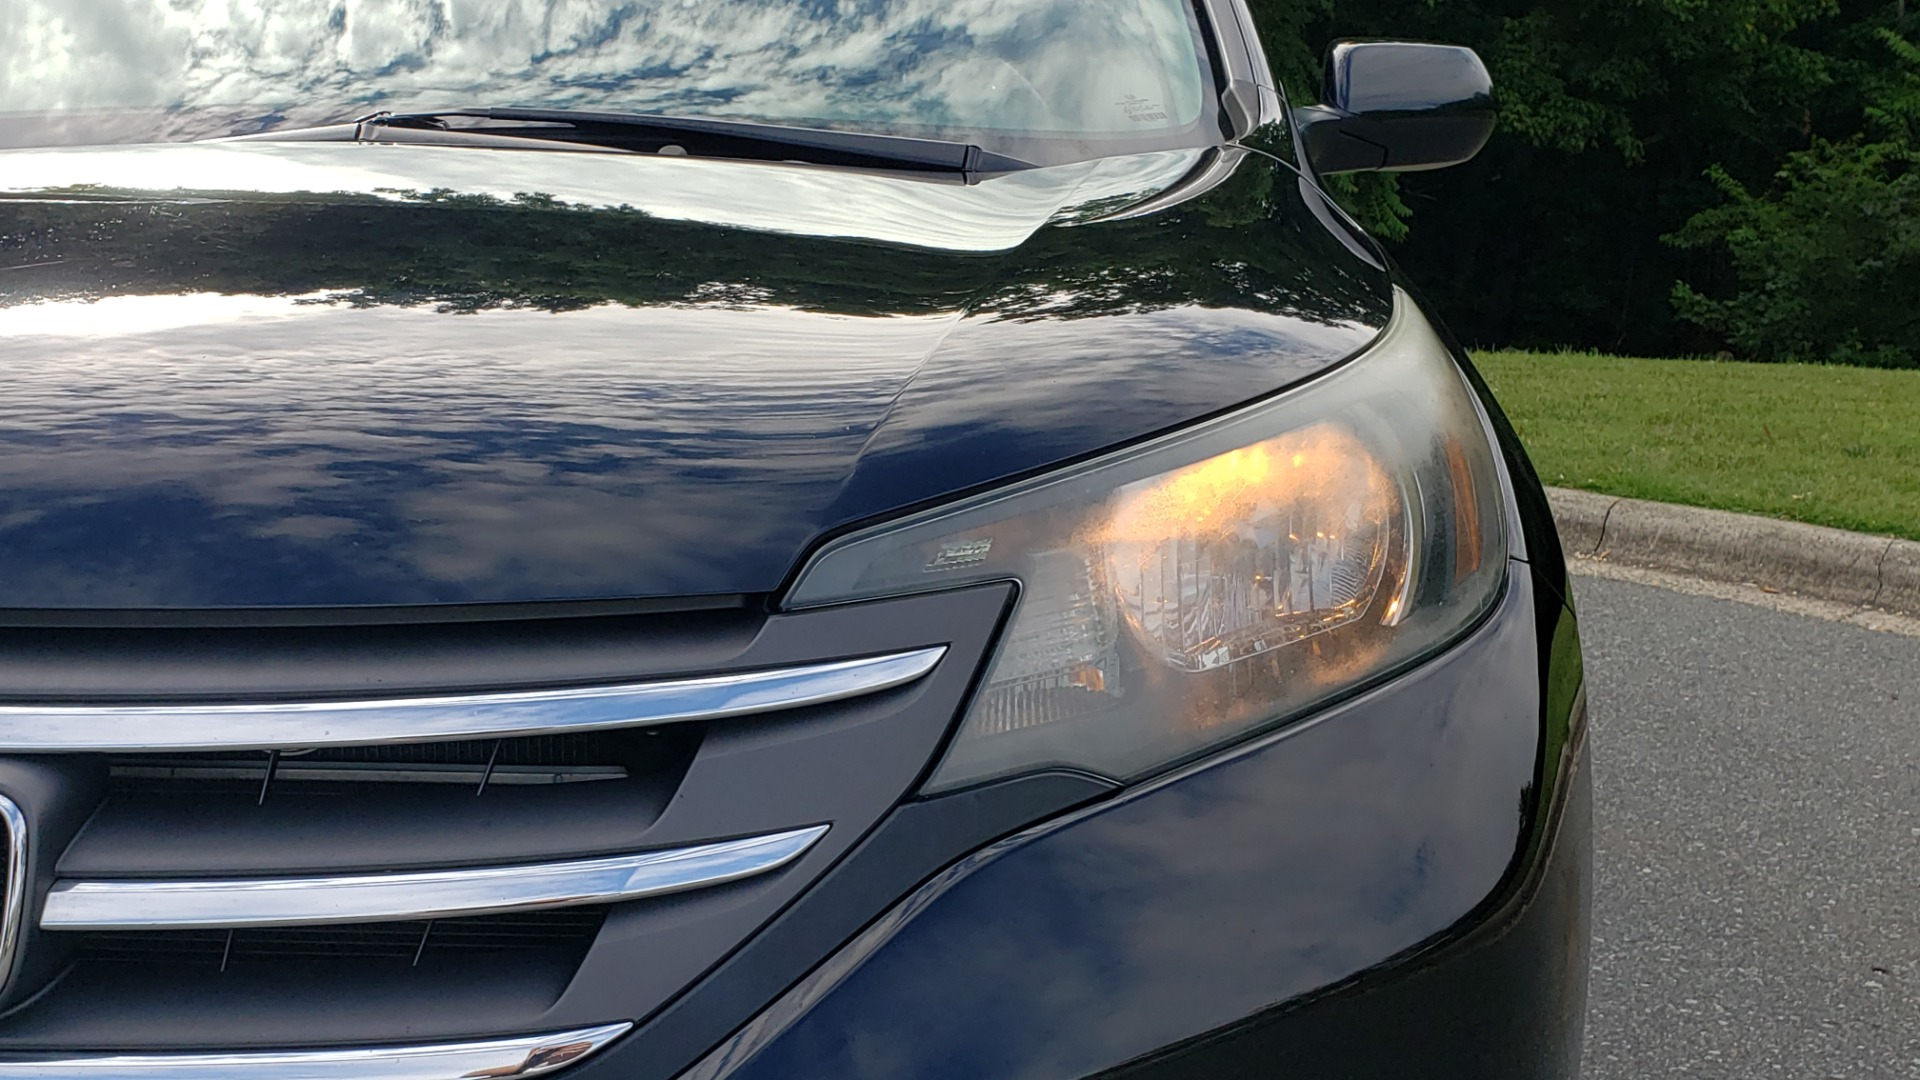 Used 2012 Honda CR-V EX-L / AWD / 5DR / SUNROOF / HEATED SEATS / REARVIEW for sale Sold at Formula Imports in Charlotte NC 28227 21